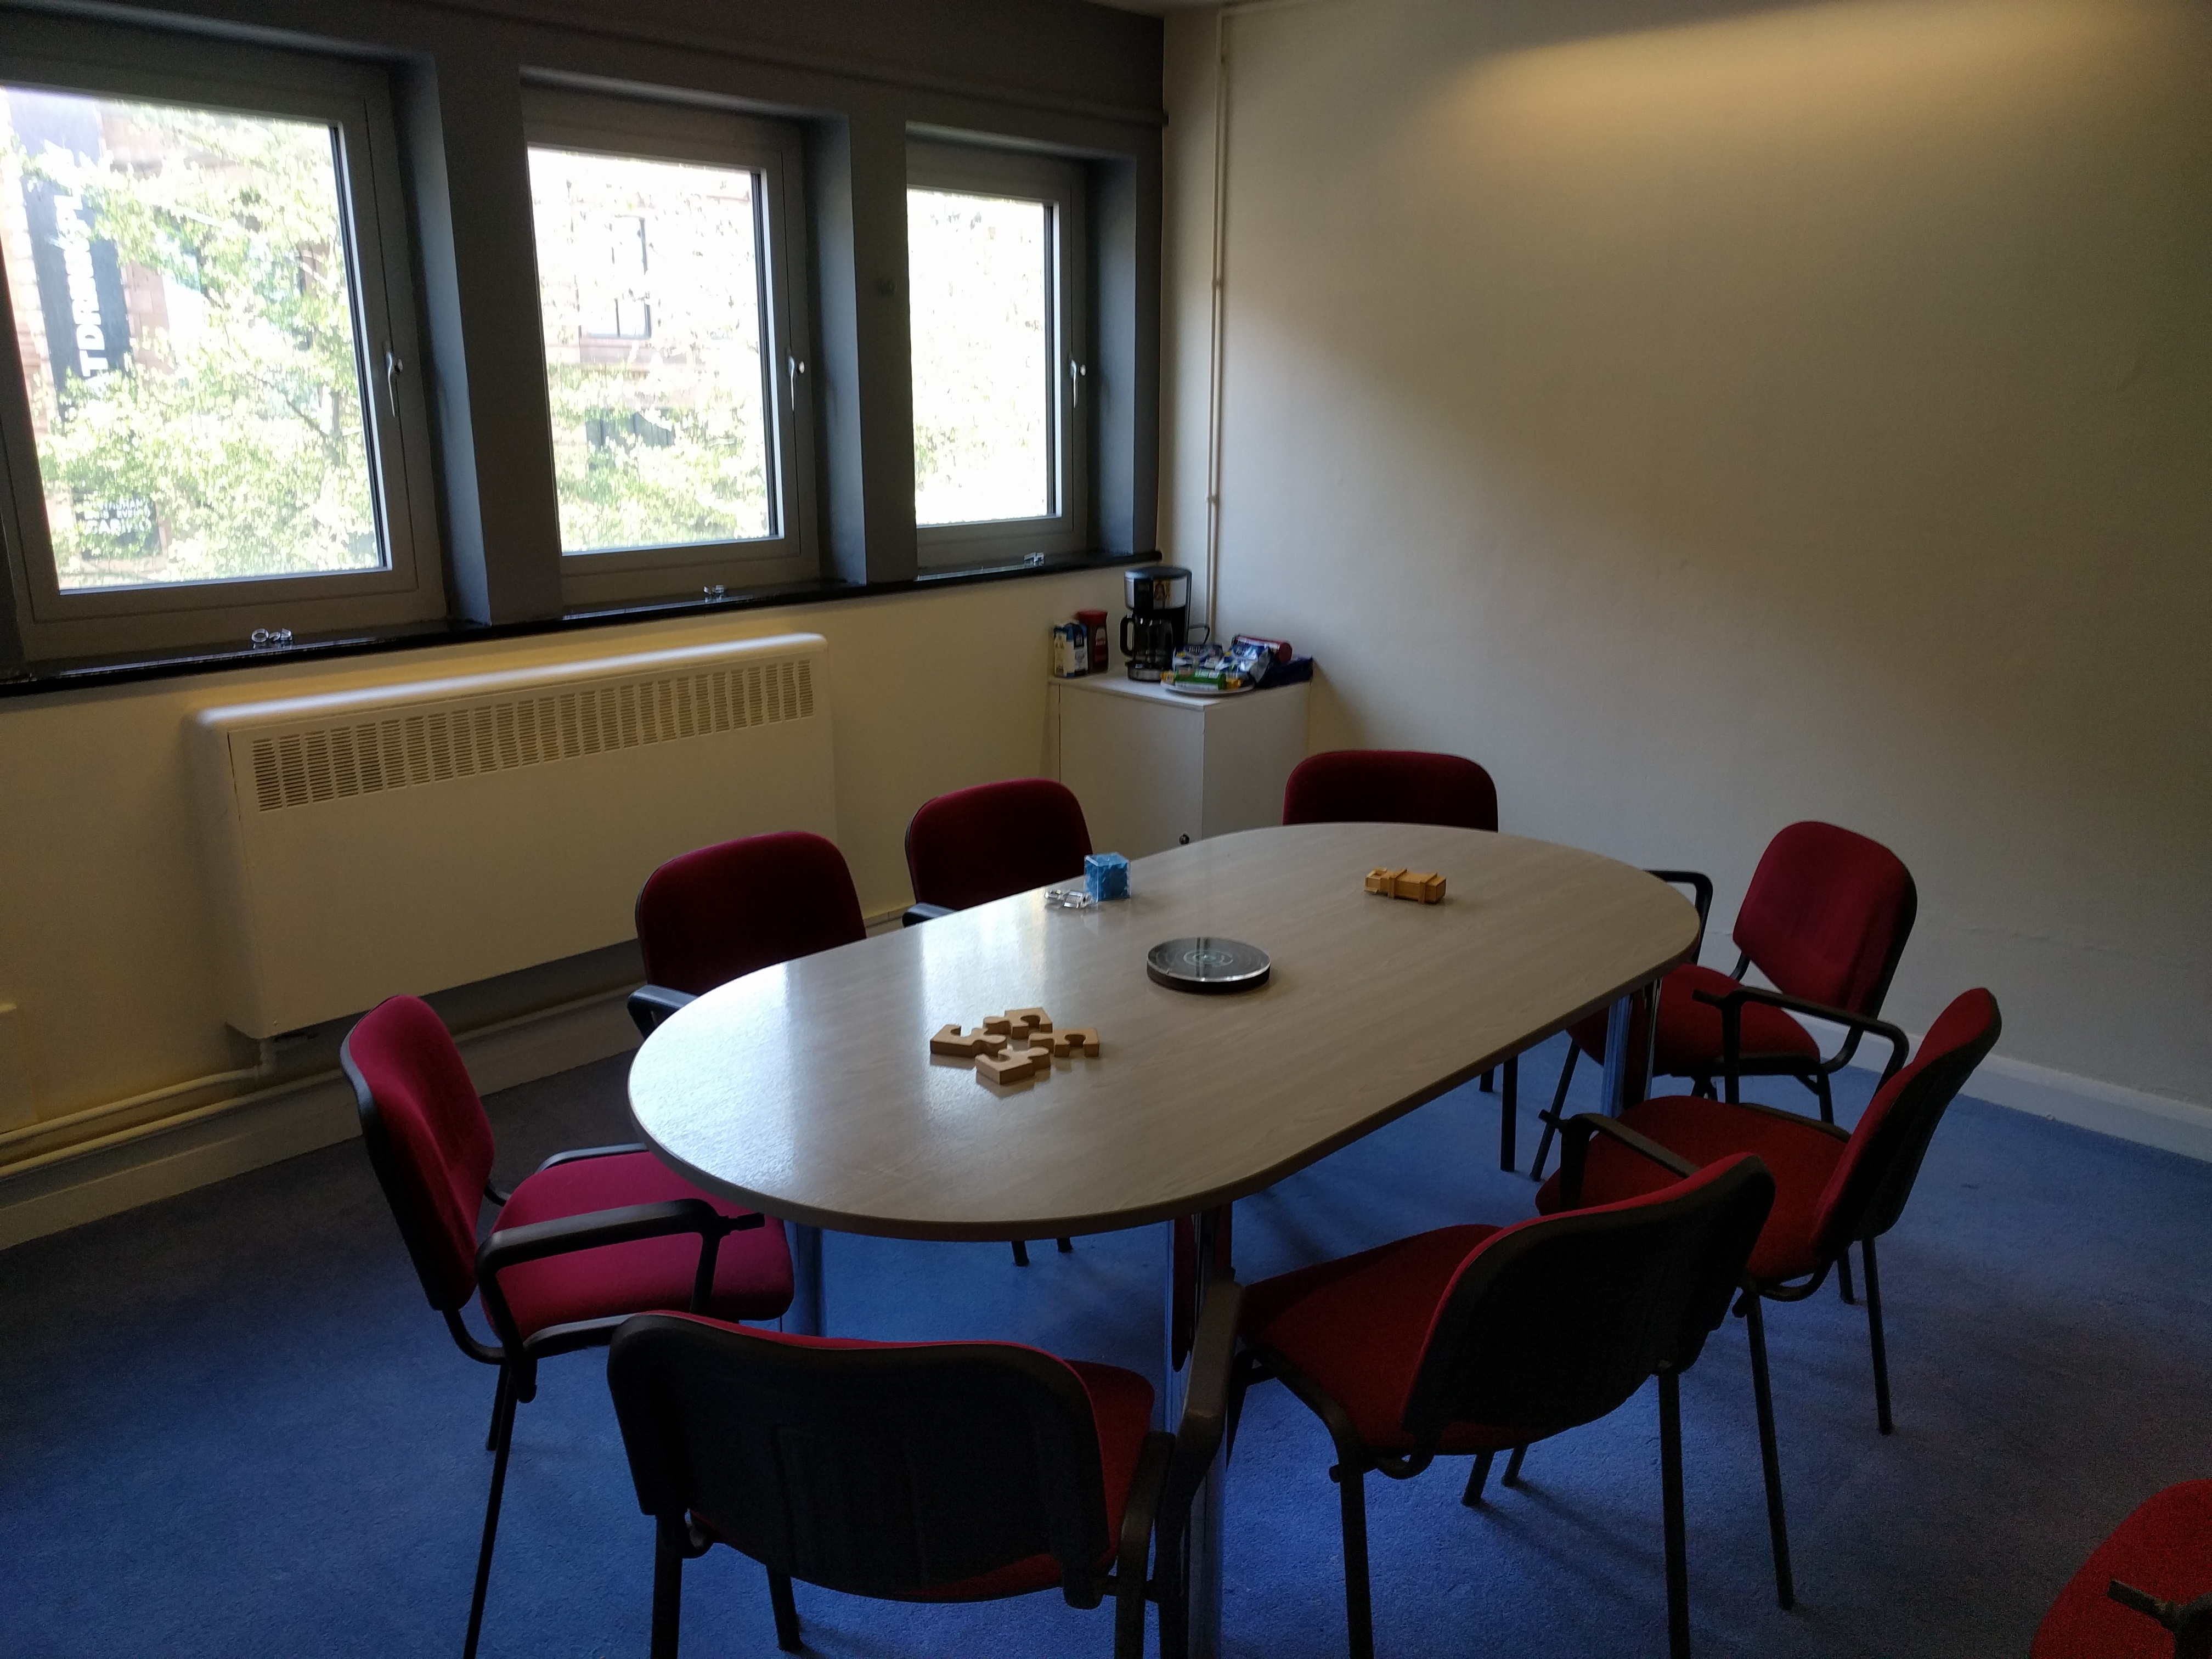 Meeting facilities at Cryptology Nottingham suitable for up to 20 people